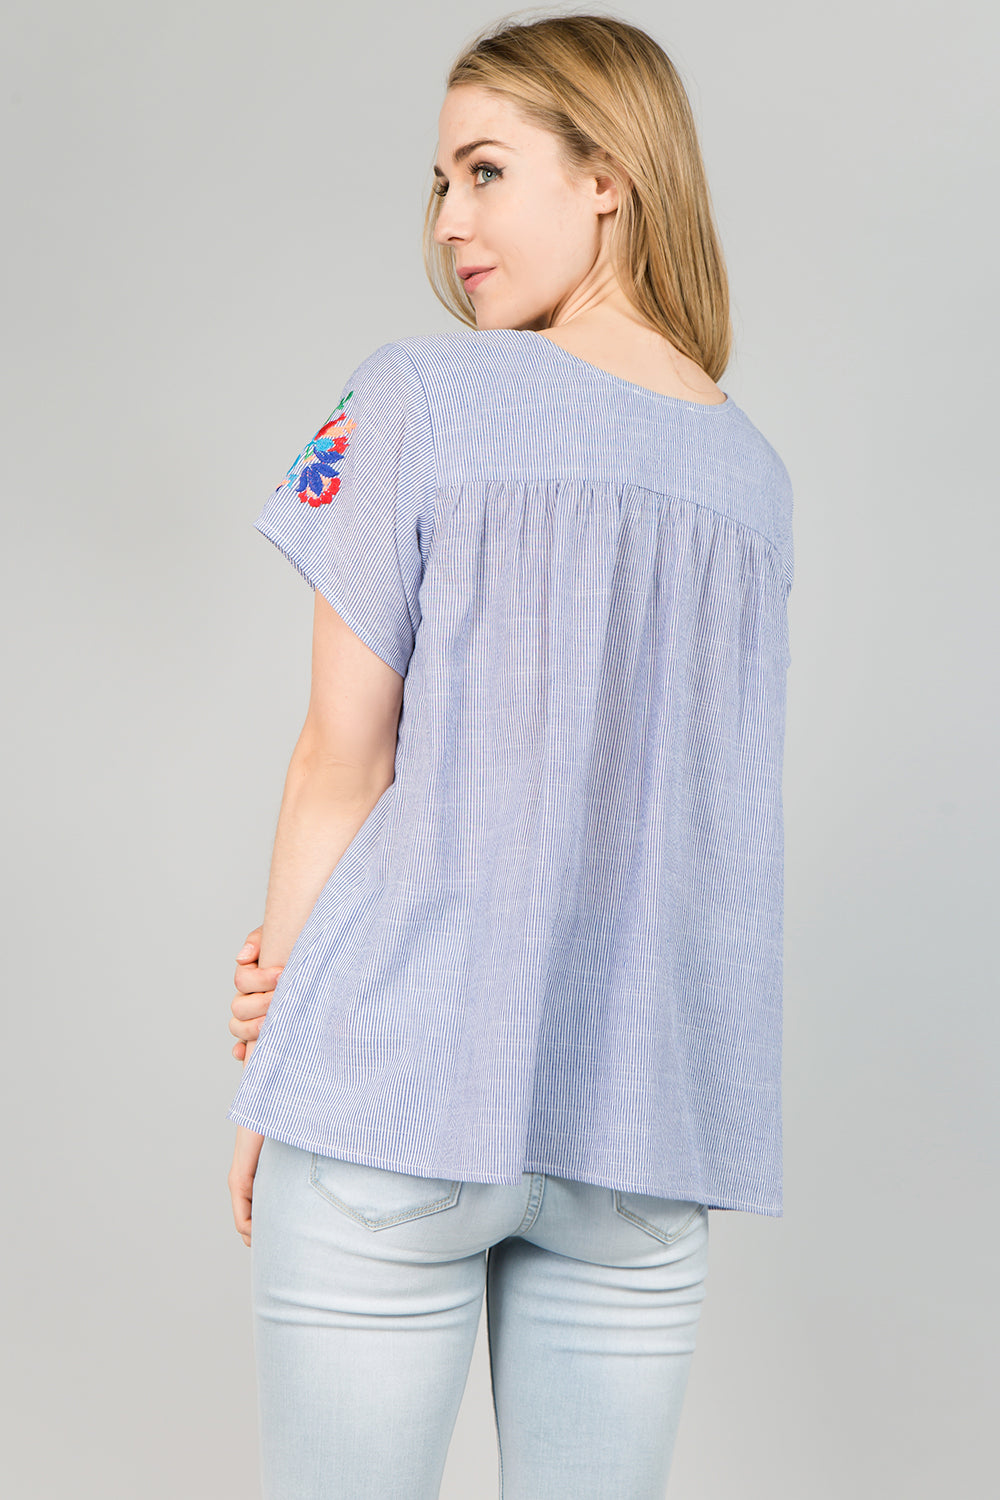 T2377 COLOR EMBROIDERY DETAIL STRIPE TOP - Blue